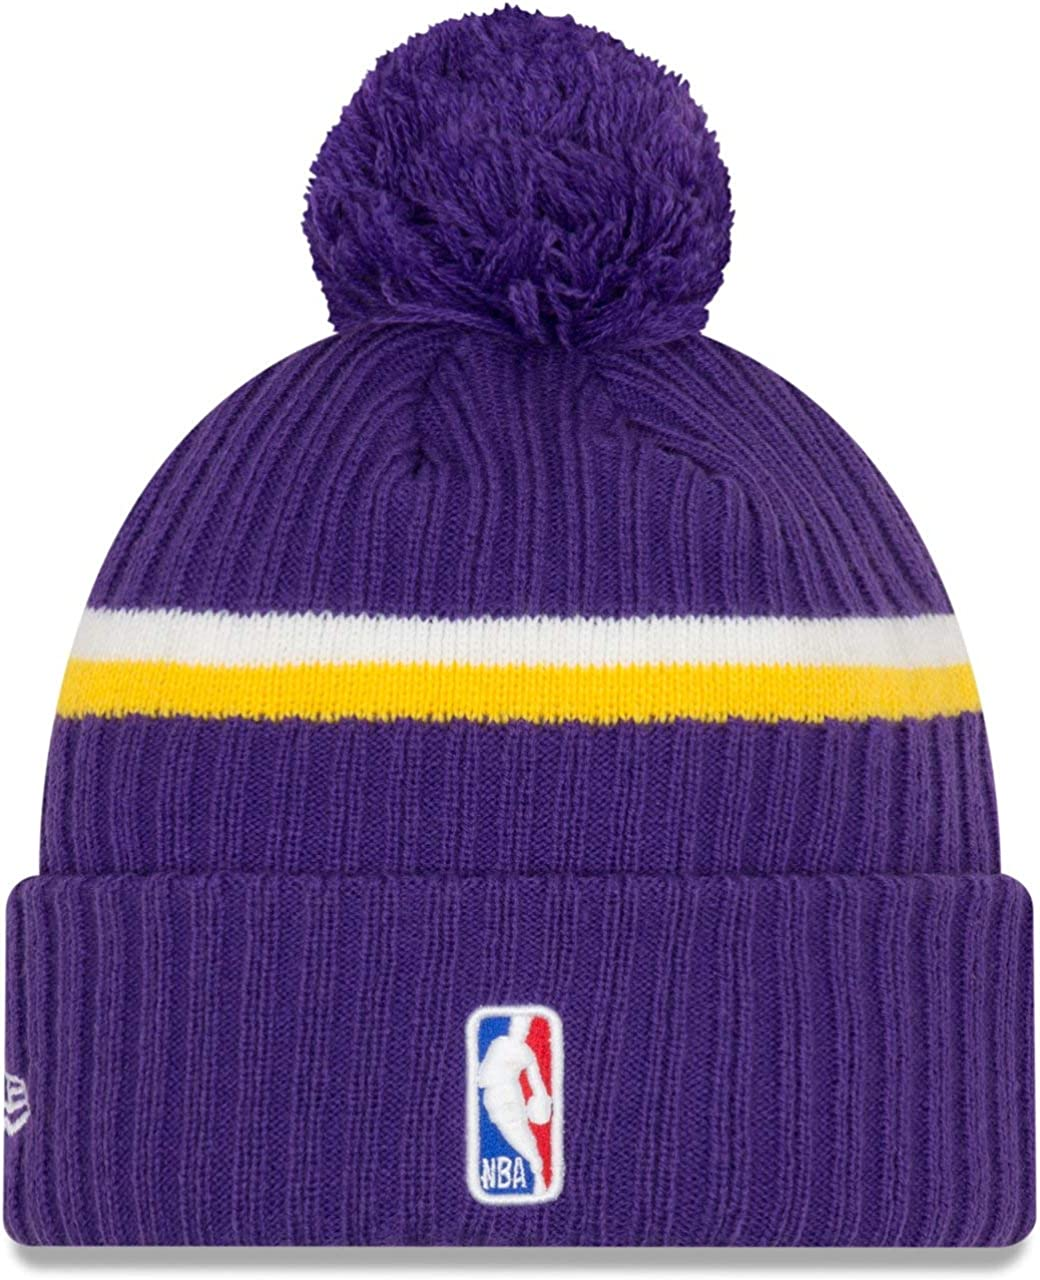 A NEW ERA Gorro con pompón de Punto Cable NBA Draft OTC L.A. ...